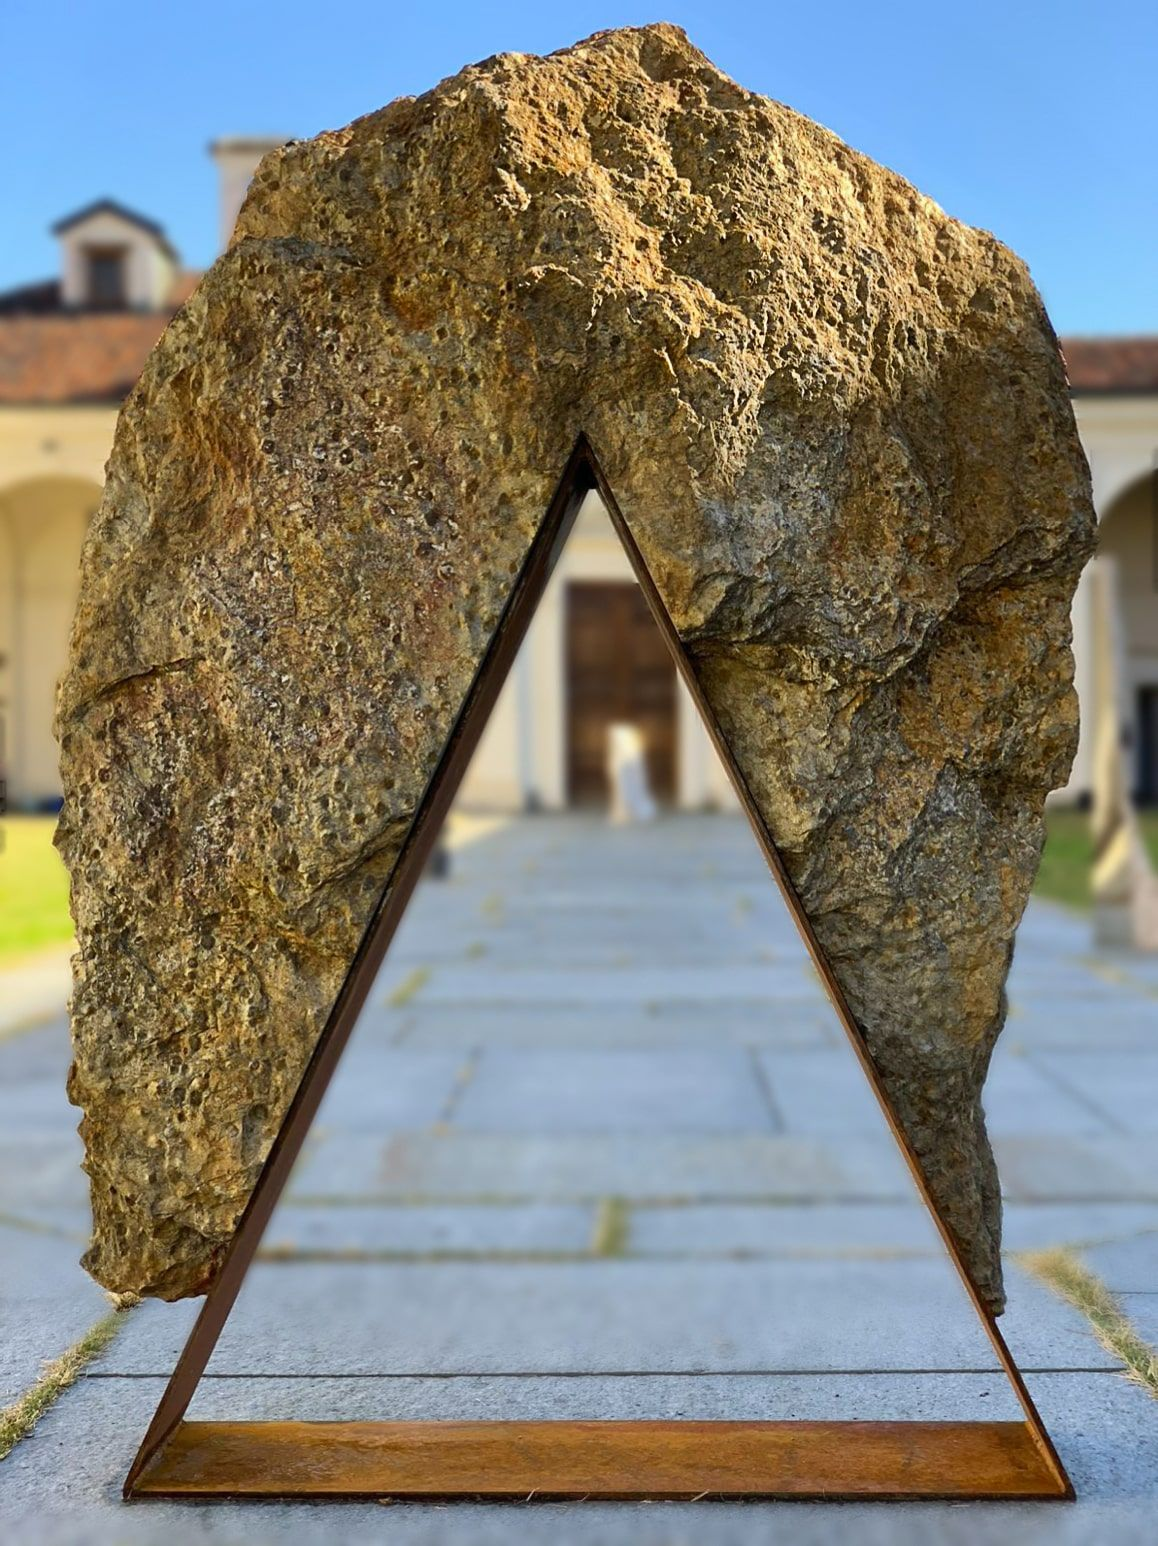 Untitled I, large-size sculpture,Mattia Bosco,Sculpture